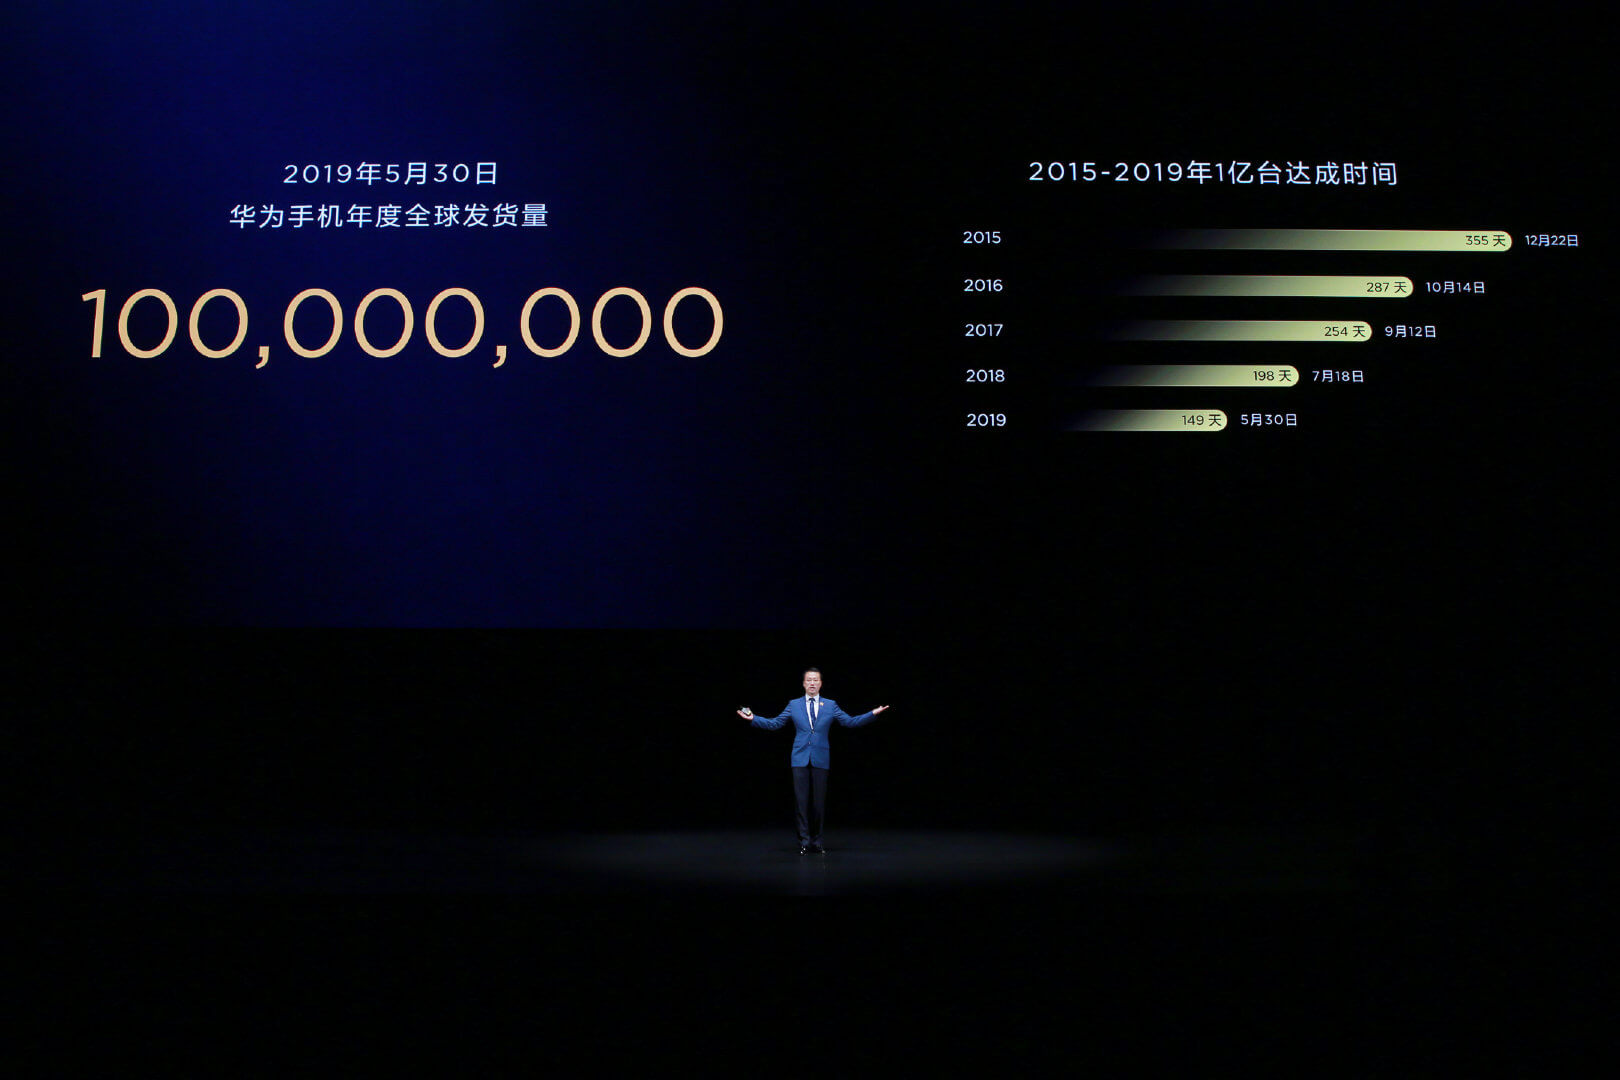 Huawei 100 Million Shipment